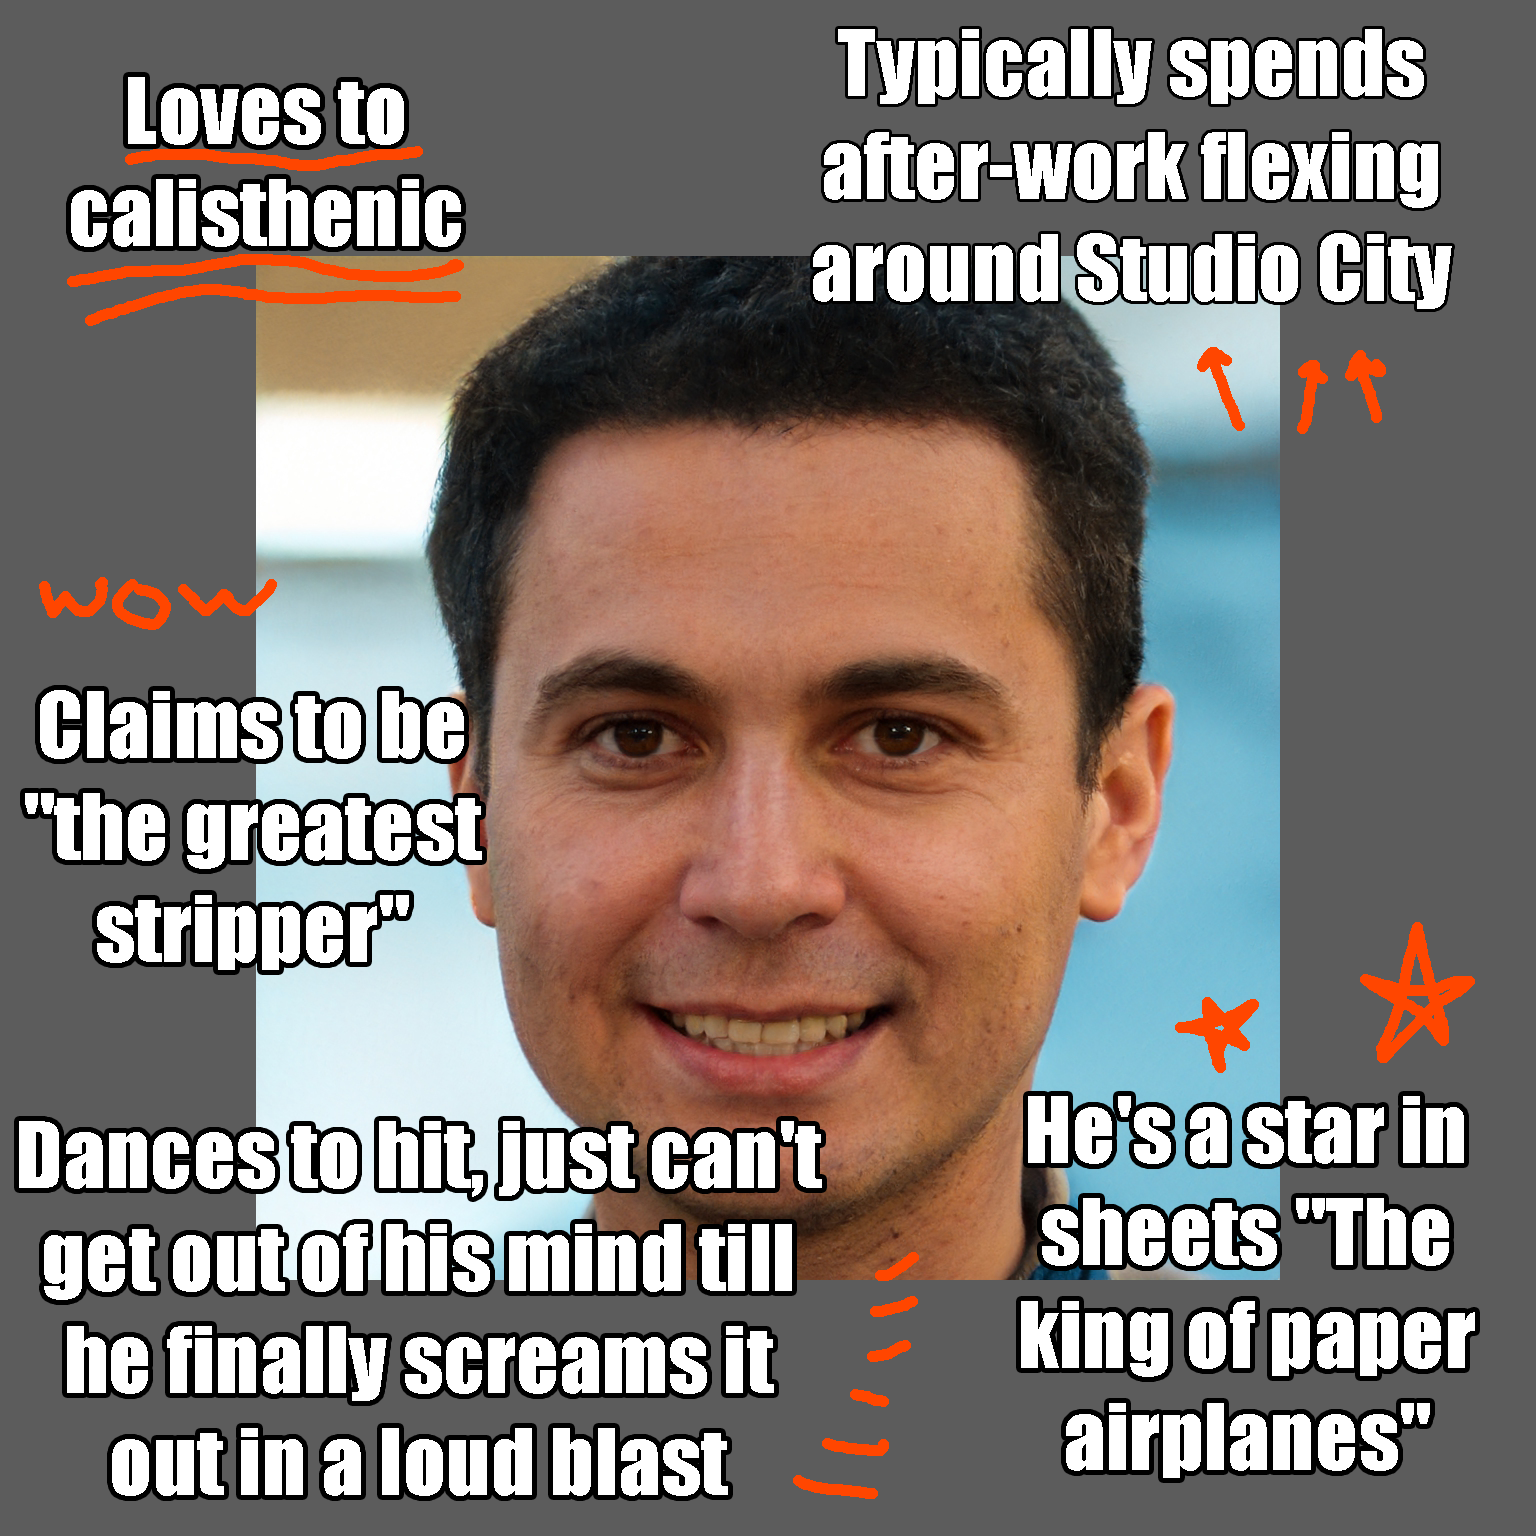 """Loves to calisthenic Typically spends after-work flexing around Studio City Claims to be """"the greatest stripper"""" He's a star in sheets """"The king of paper airplanes"""" Dances to hit, just can't get out of his mind till he finally screams it out in a loud blast"""